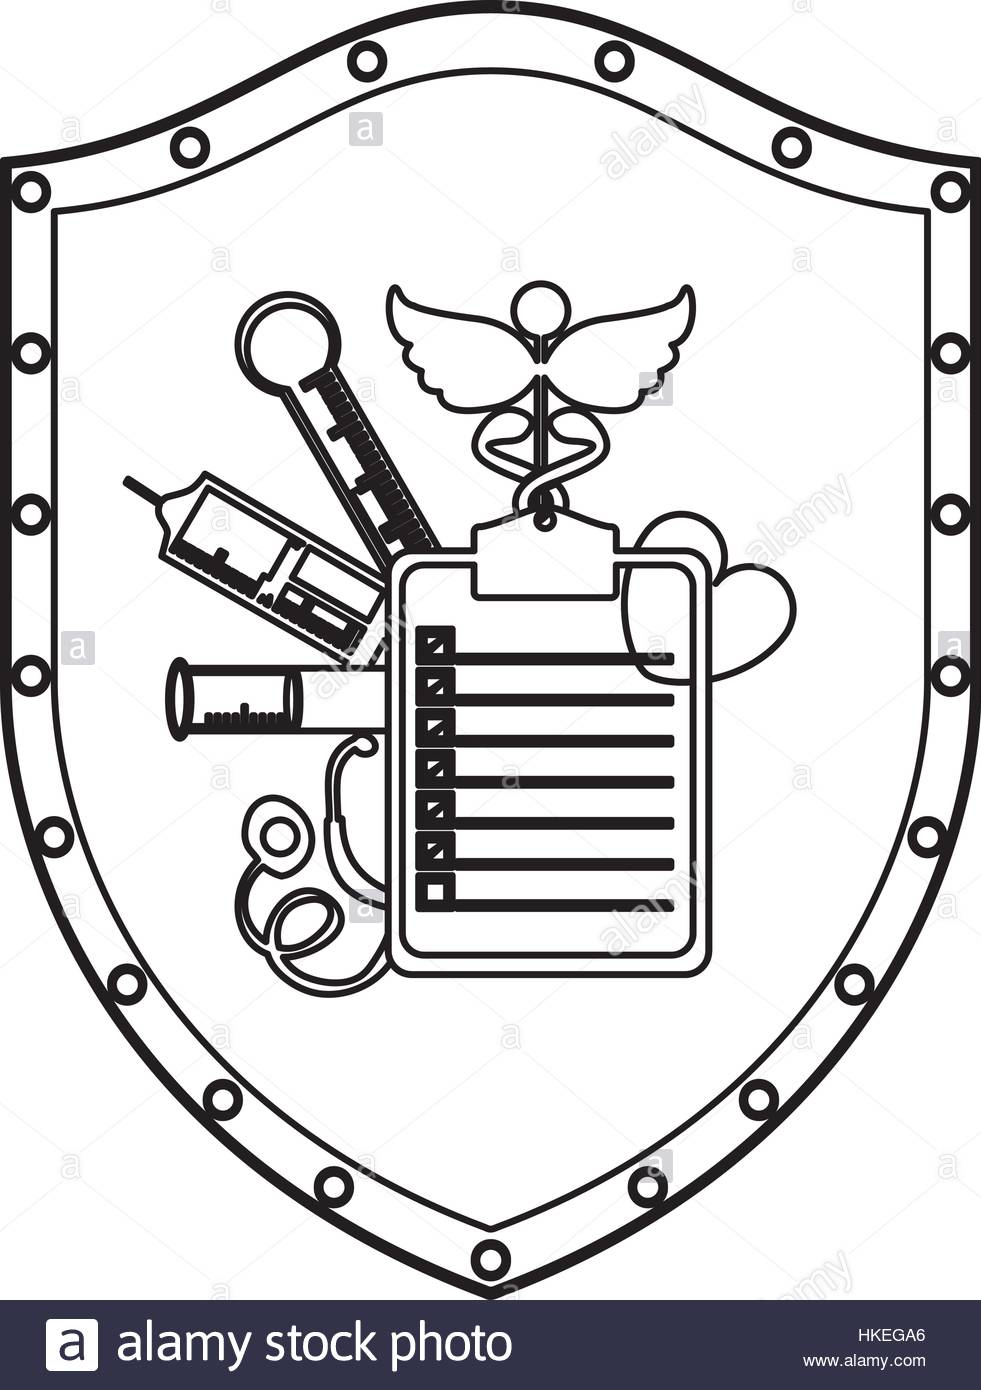 981x1390 Medical Equipment On Shield Icon Vector Illustration Graphic